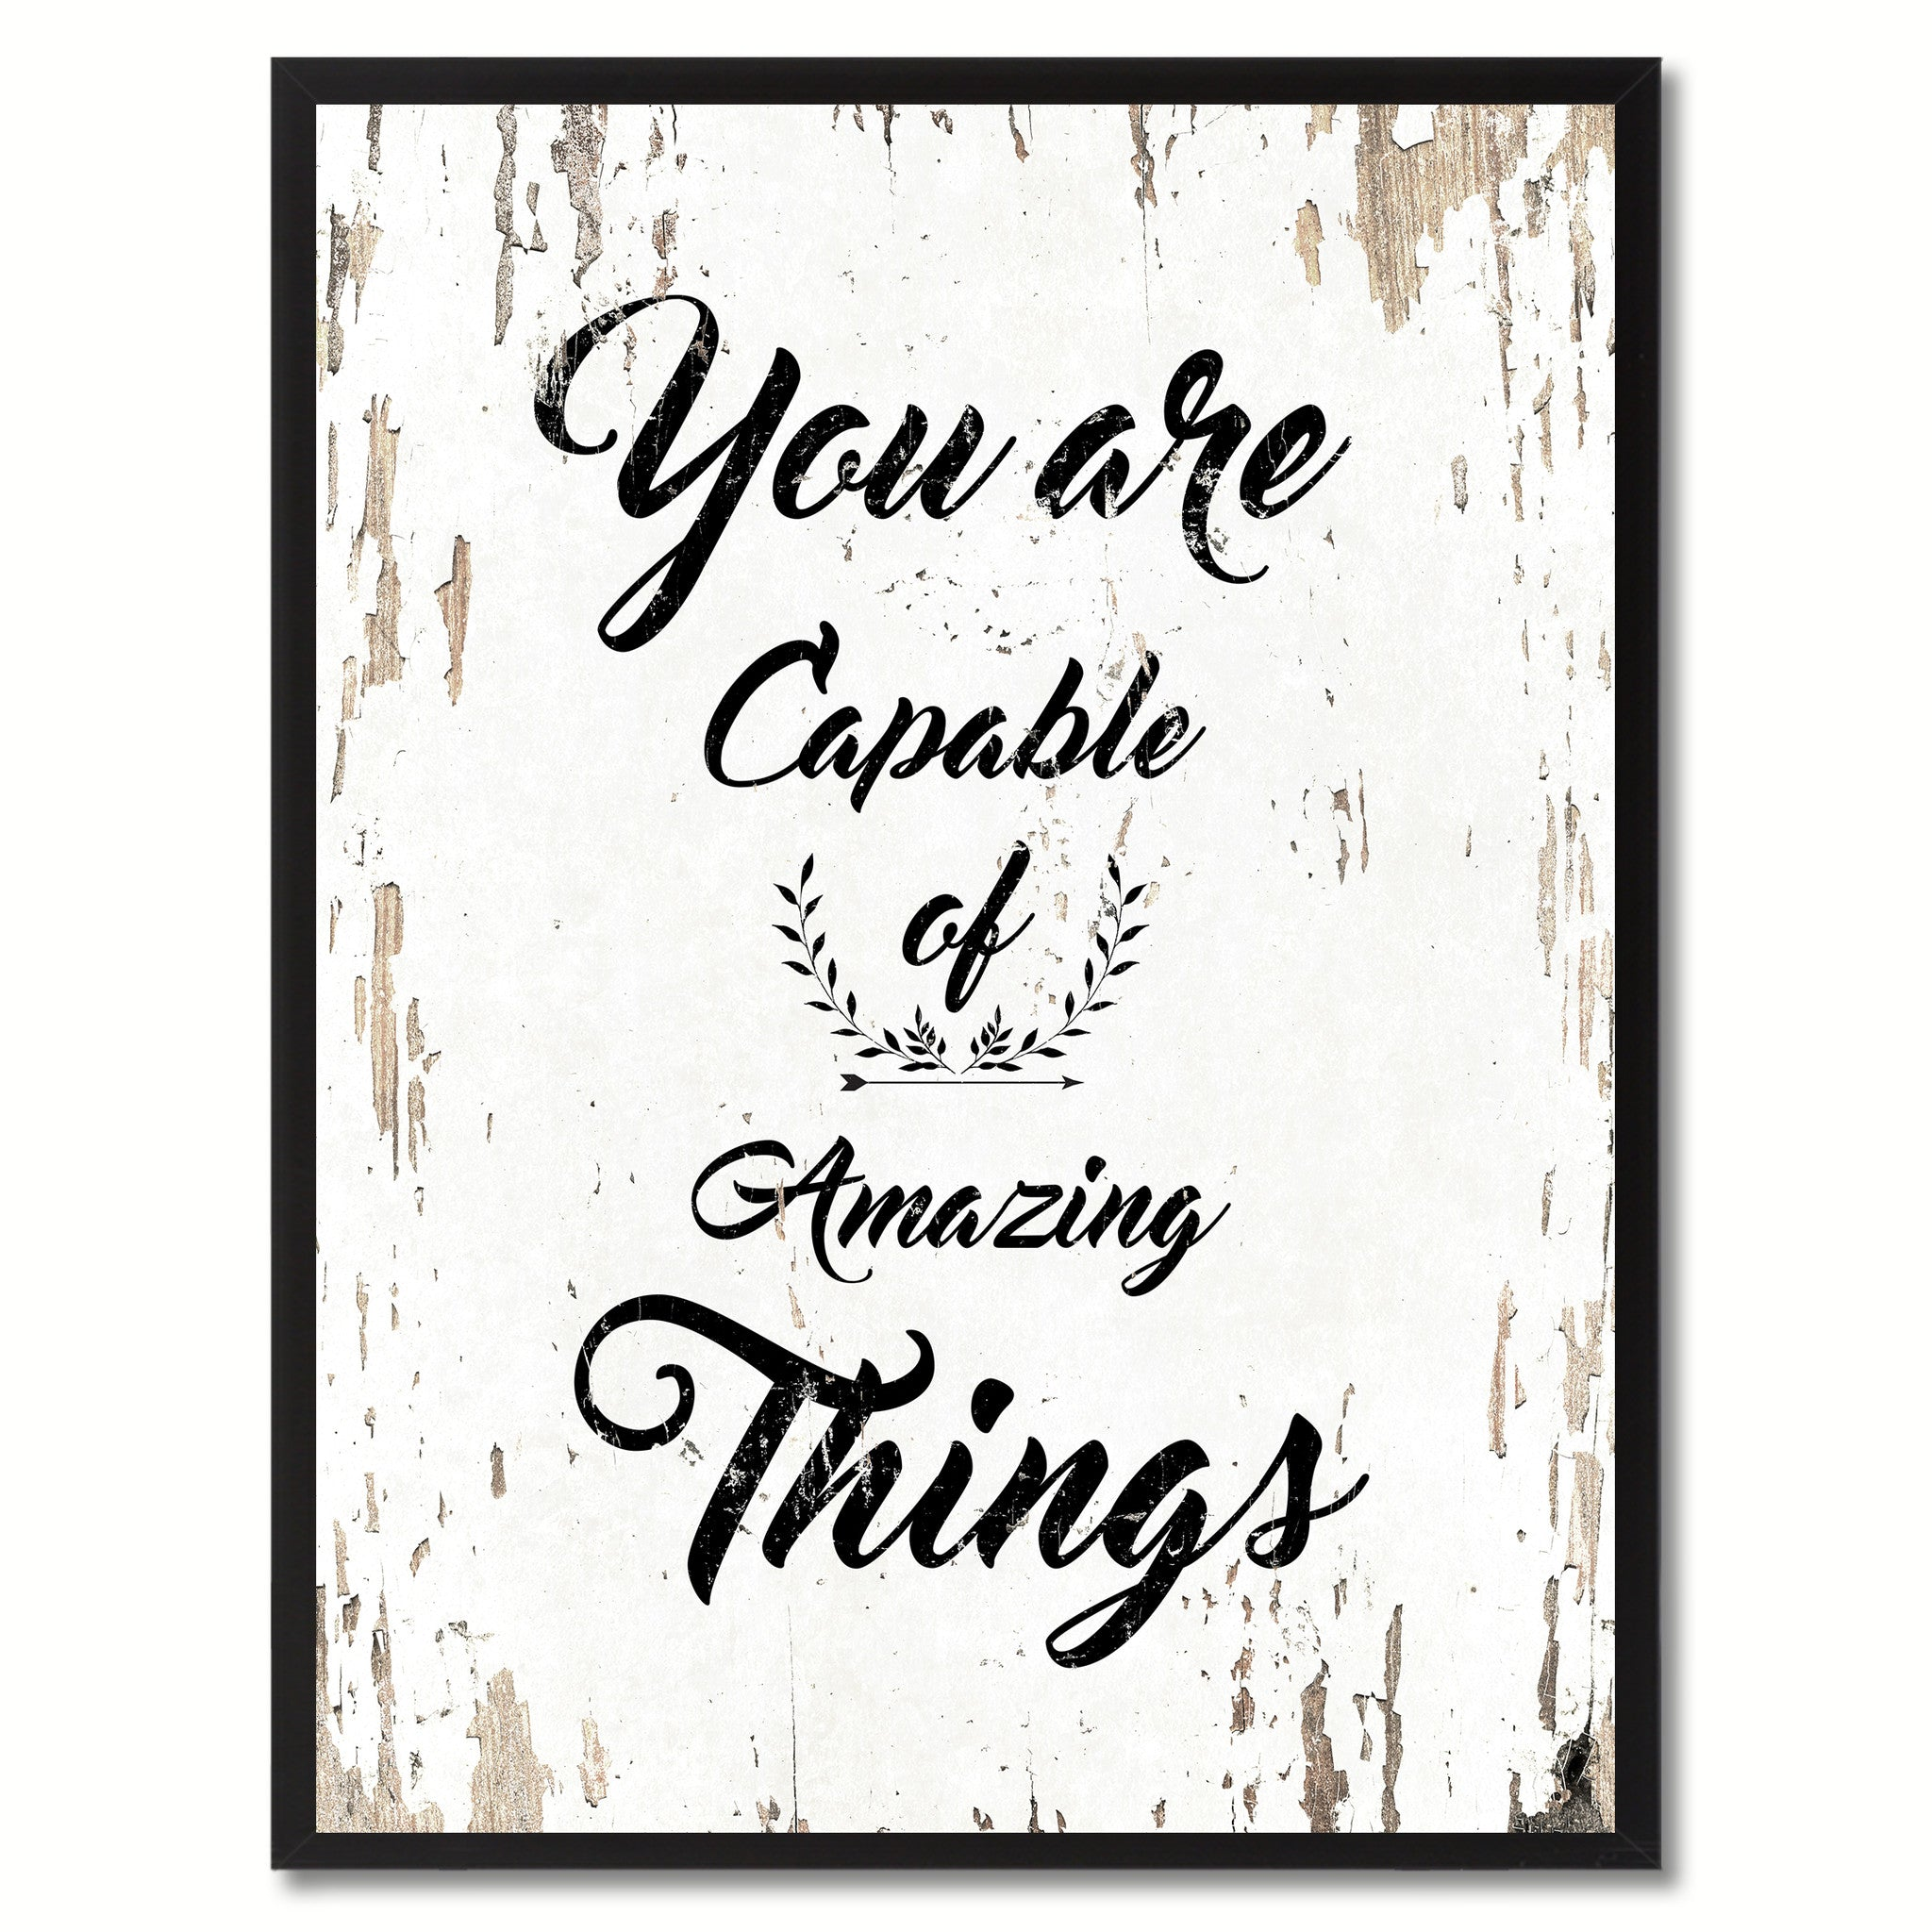 Amazing Life Quotes For Inspiration Free Printable Cards: You Are Capable Of Amazing Things Inspirational Motivation